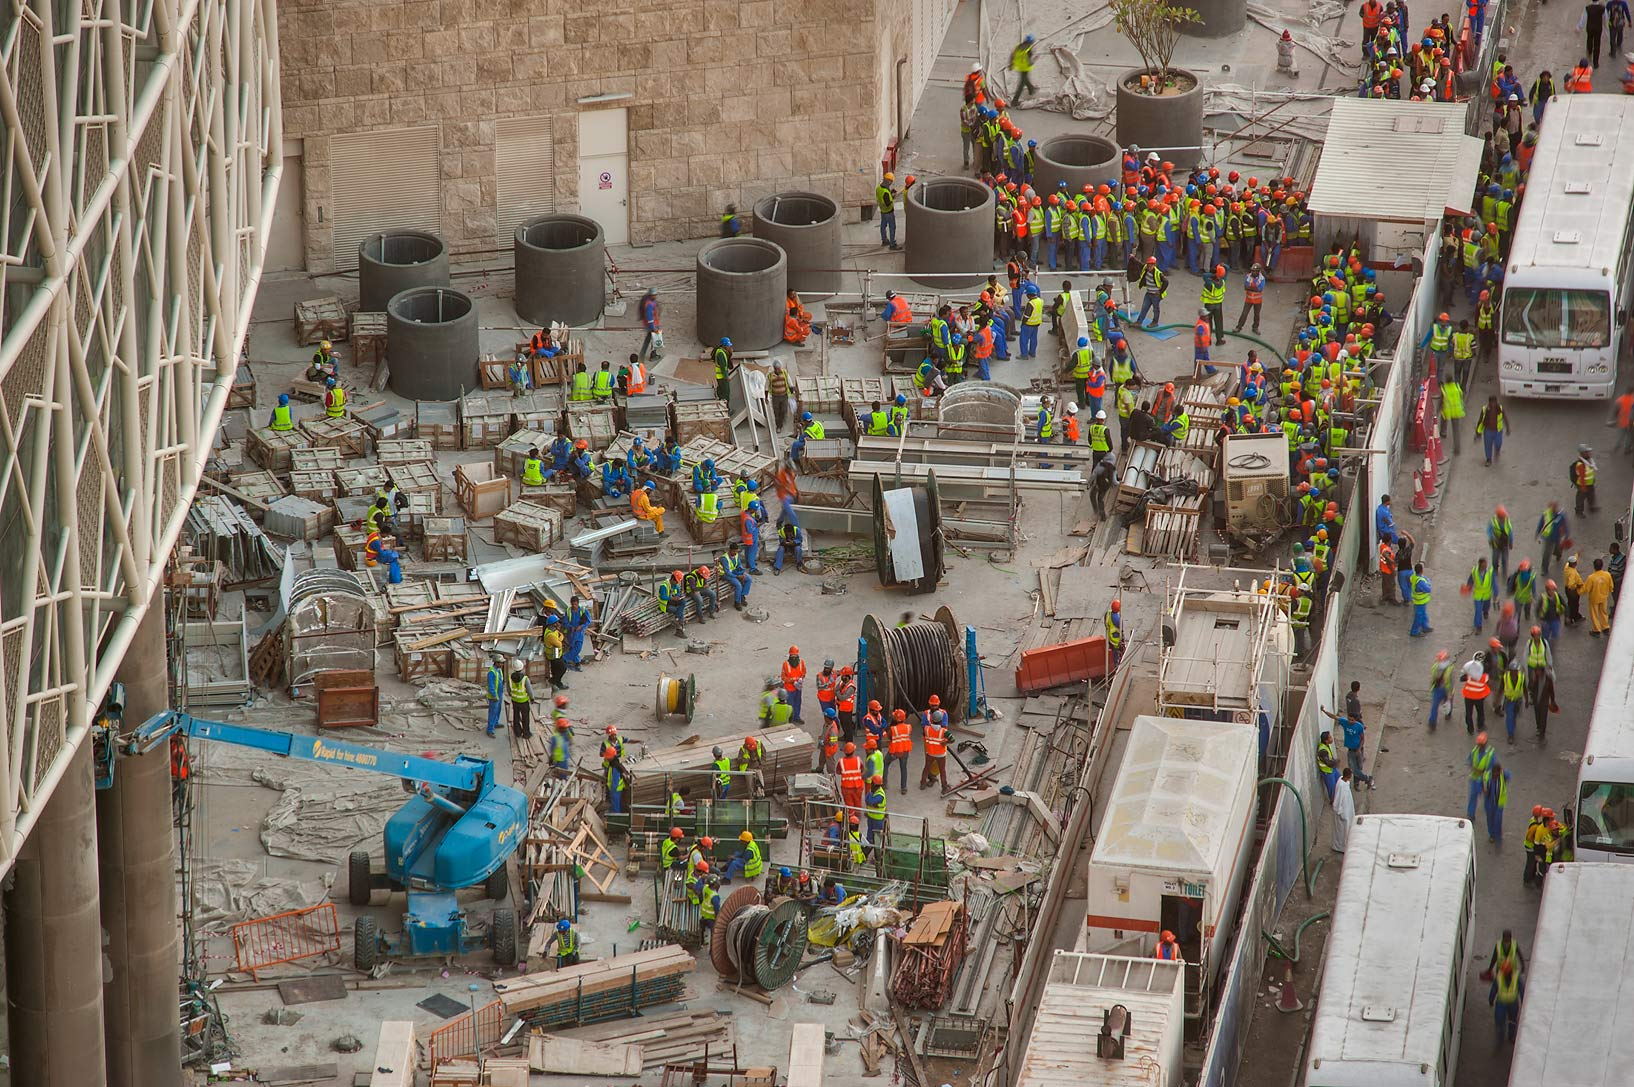 Gathering of workers on construction of Qatar...1-2244 of Ezdan Hotel. Doha, Qatar